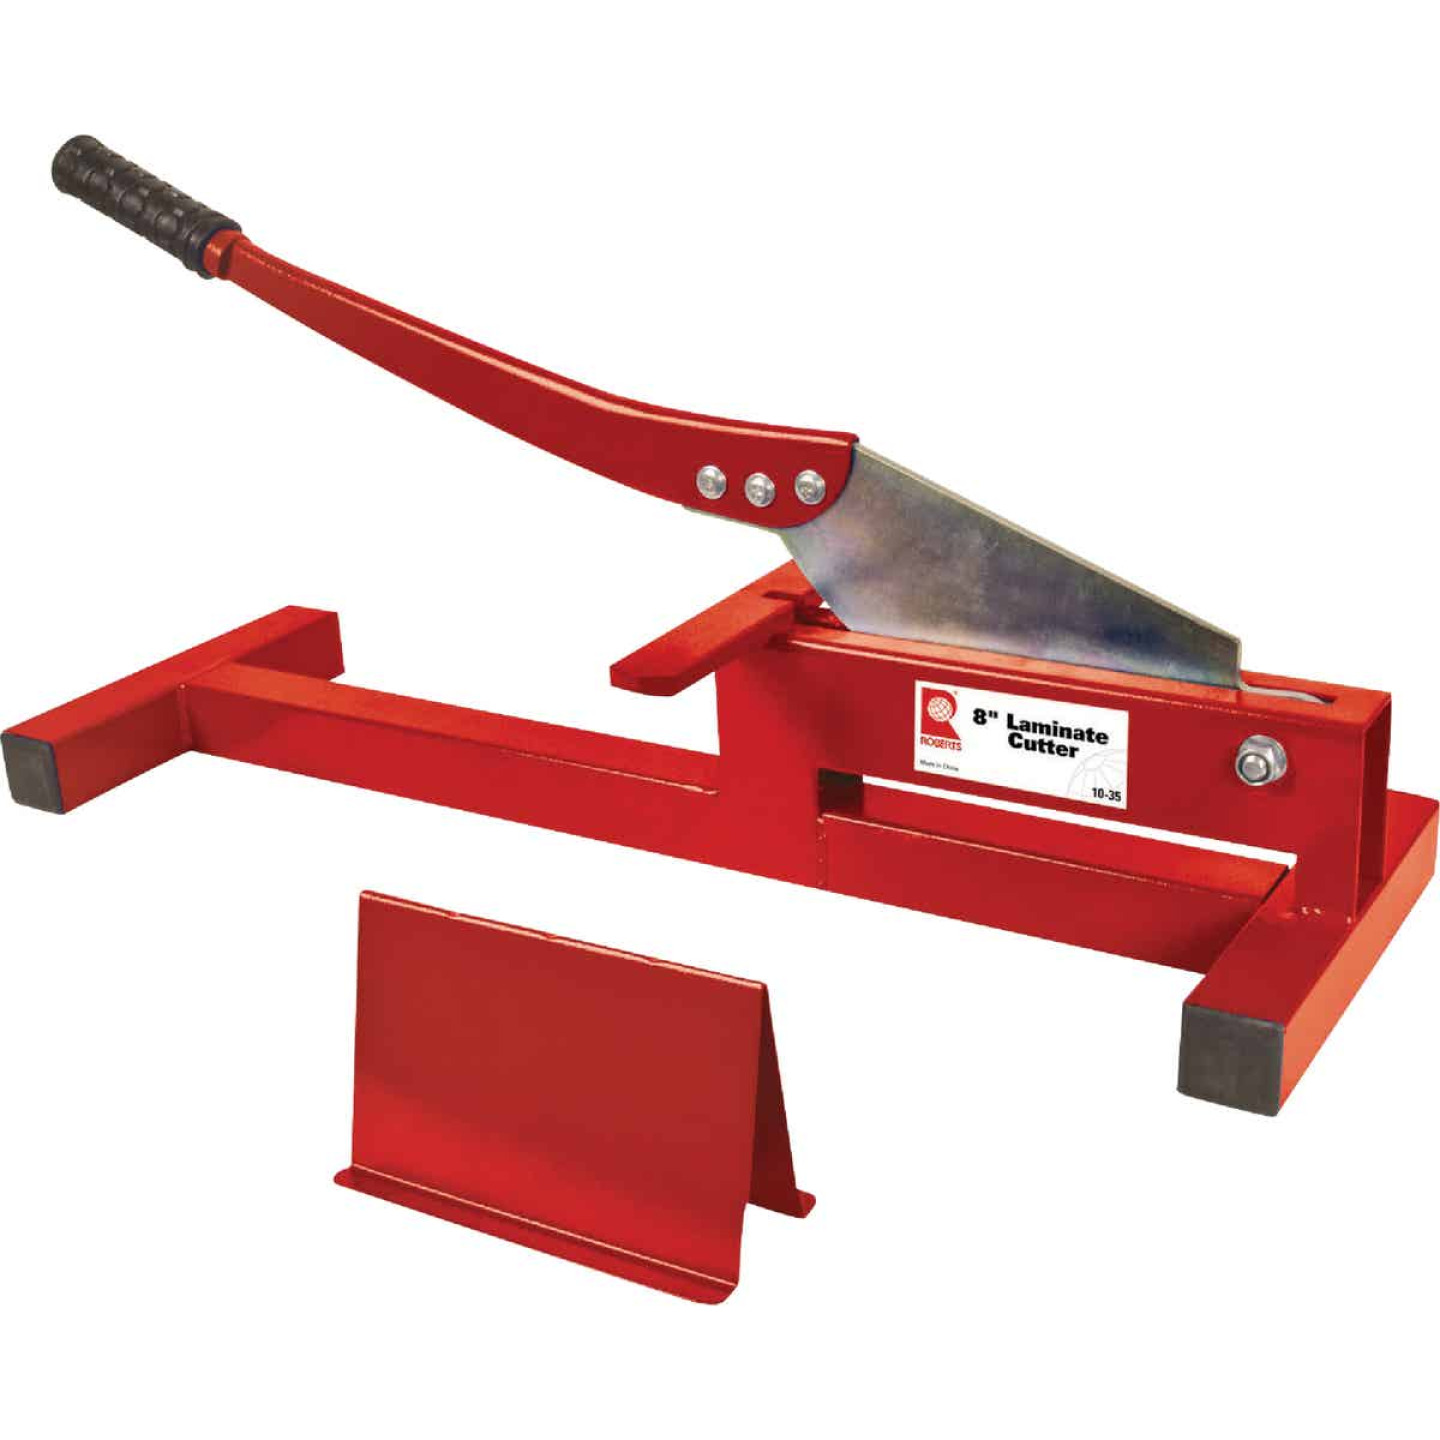 Roberts 8 In. Laminate Cutter Image 1